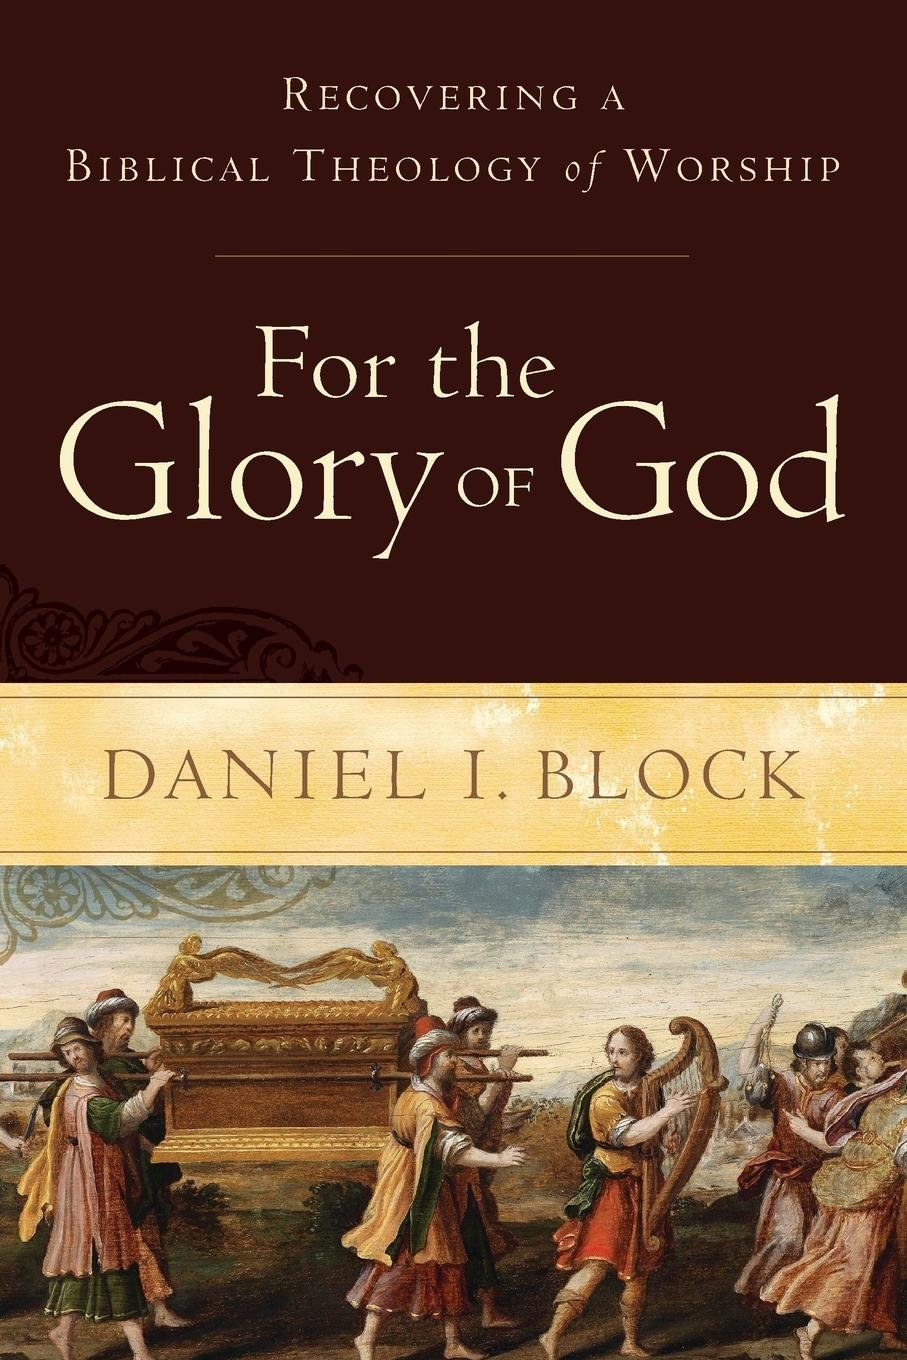 For the Glory of God: Recovering a Biblical Theology of Worship: Daniel I.  Block: 9780801098567: Amazon.com: Books